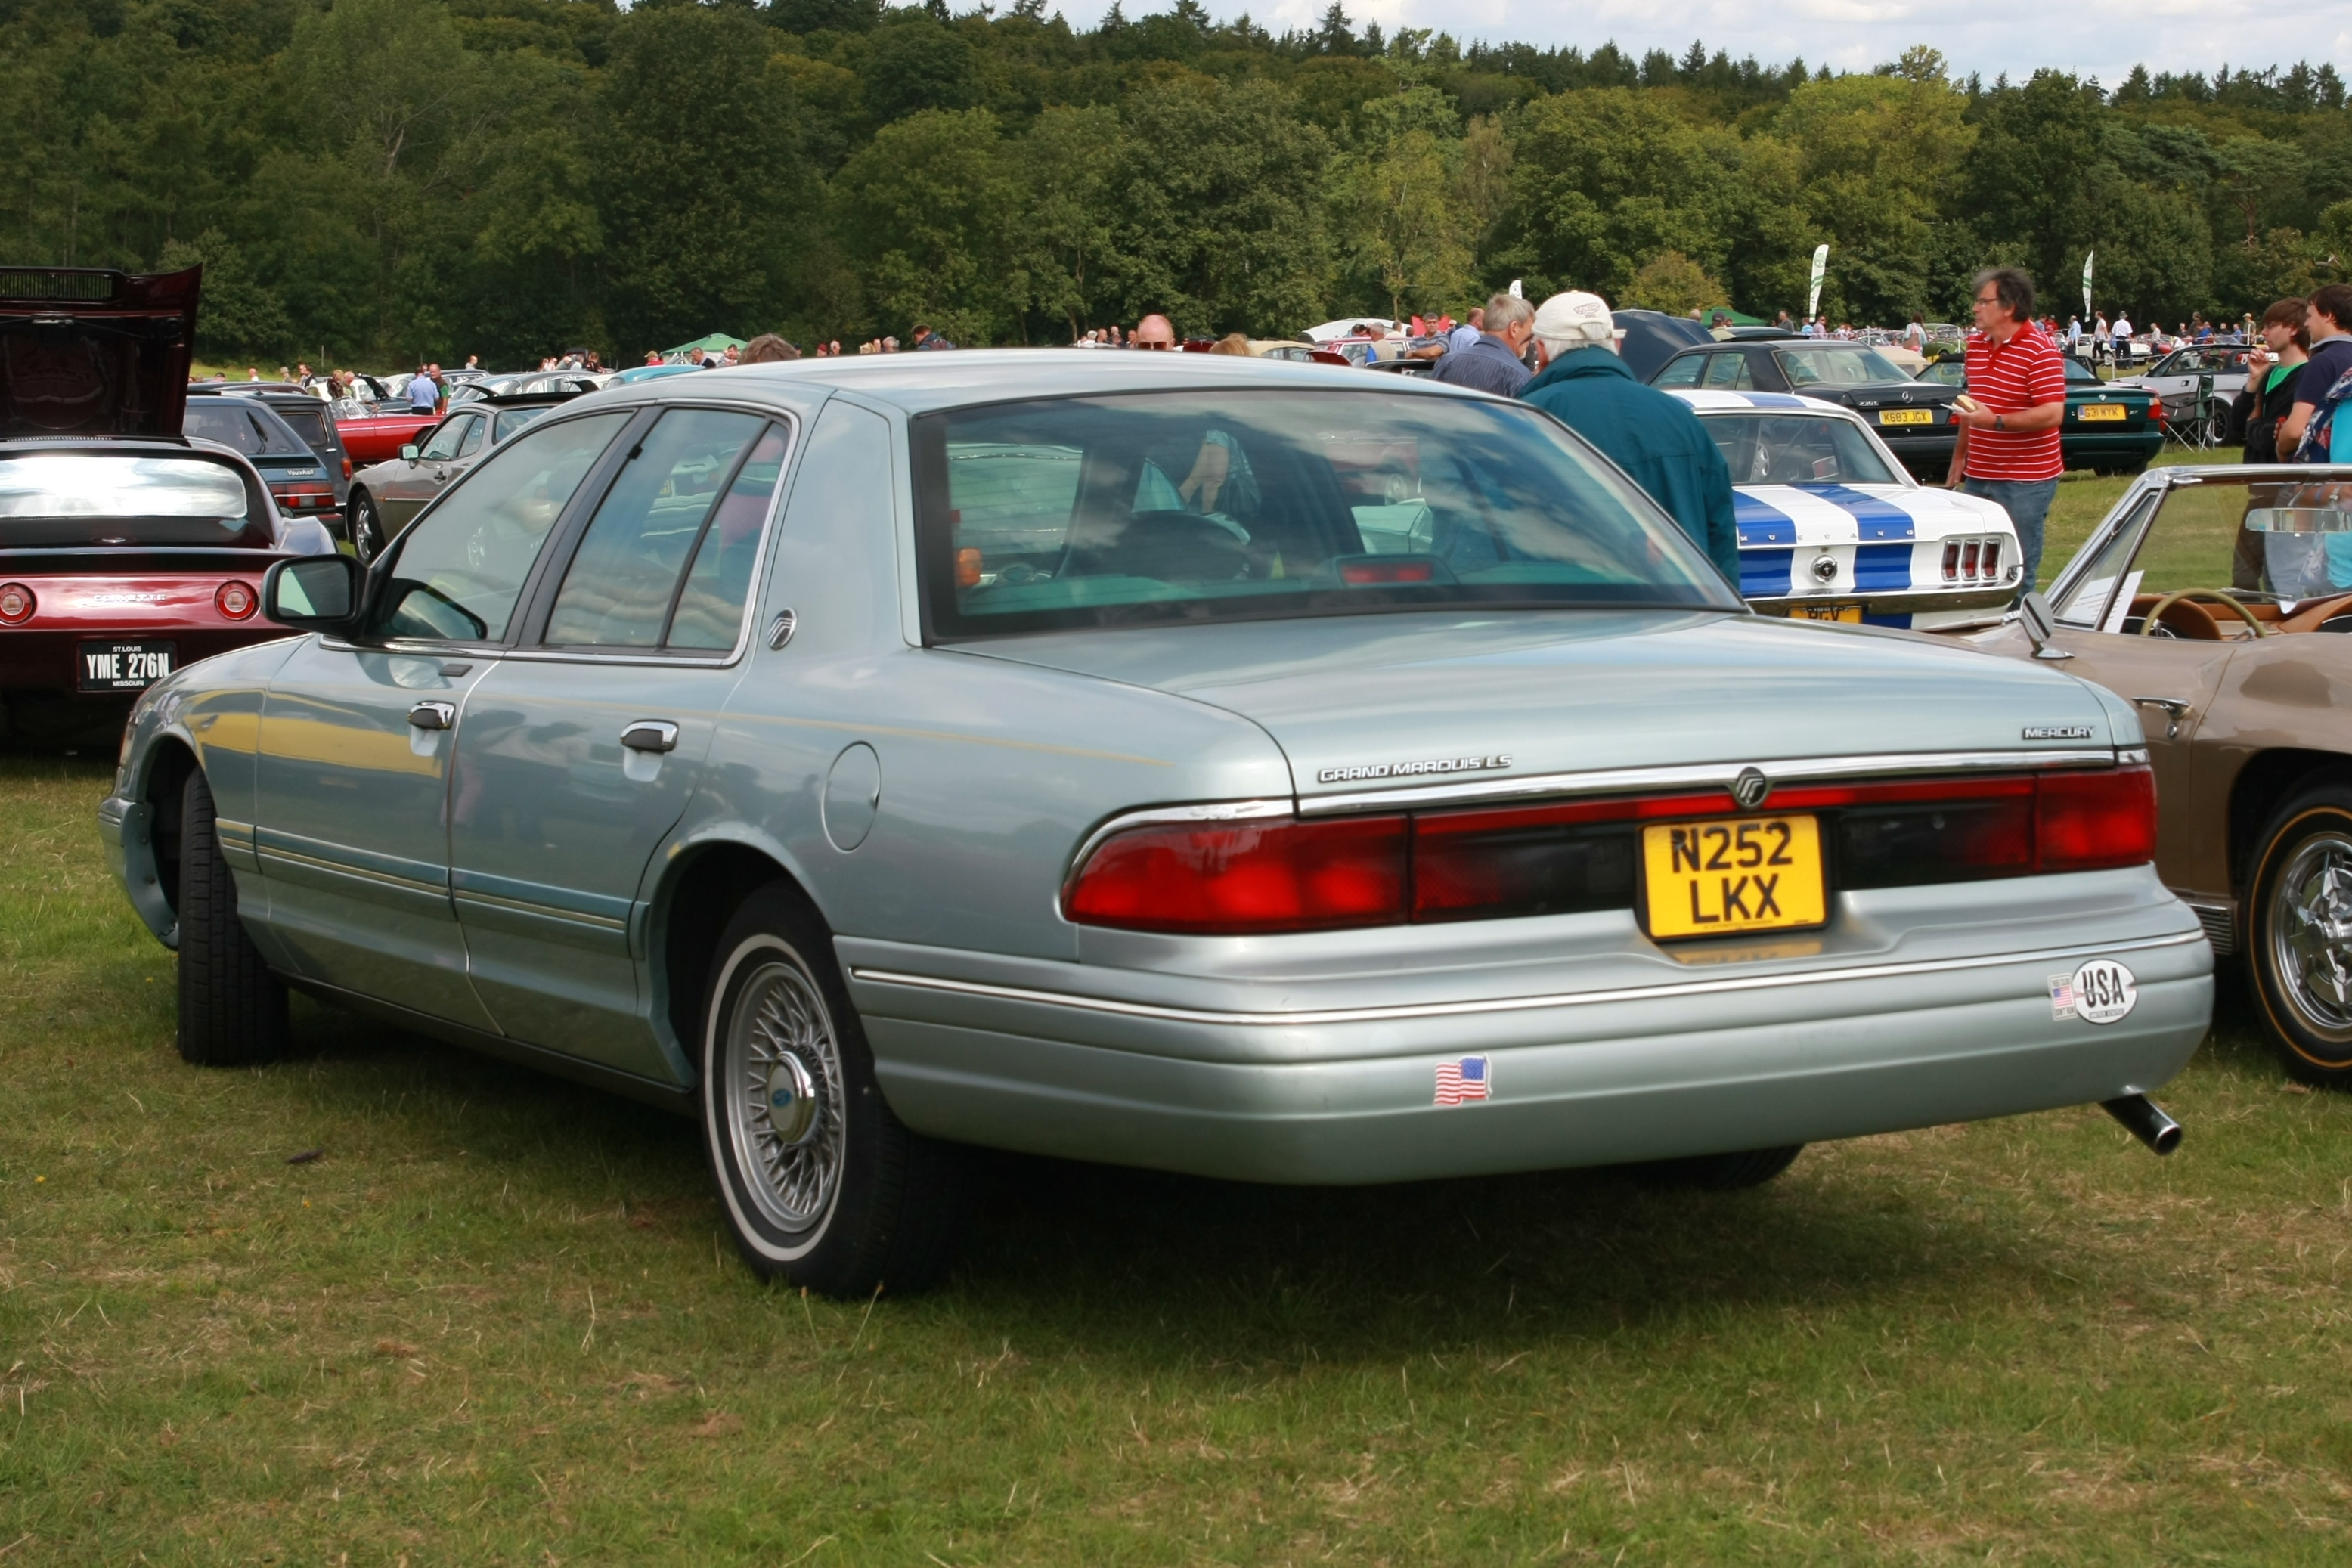 Mercury_Grand_Marquis_ca_1994_rear_three_quarters mercury grand marquis wikipedia  at fashall.co